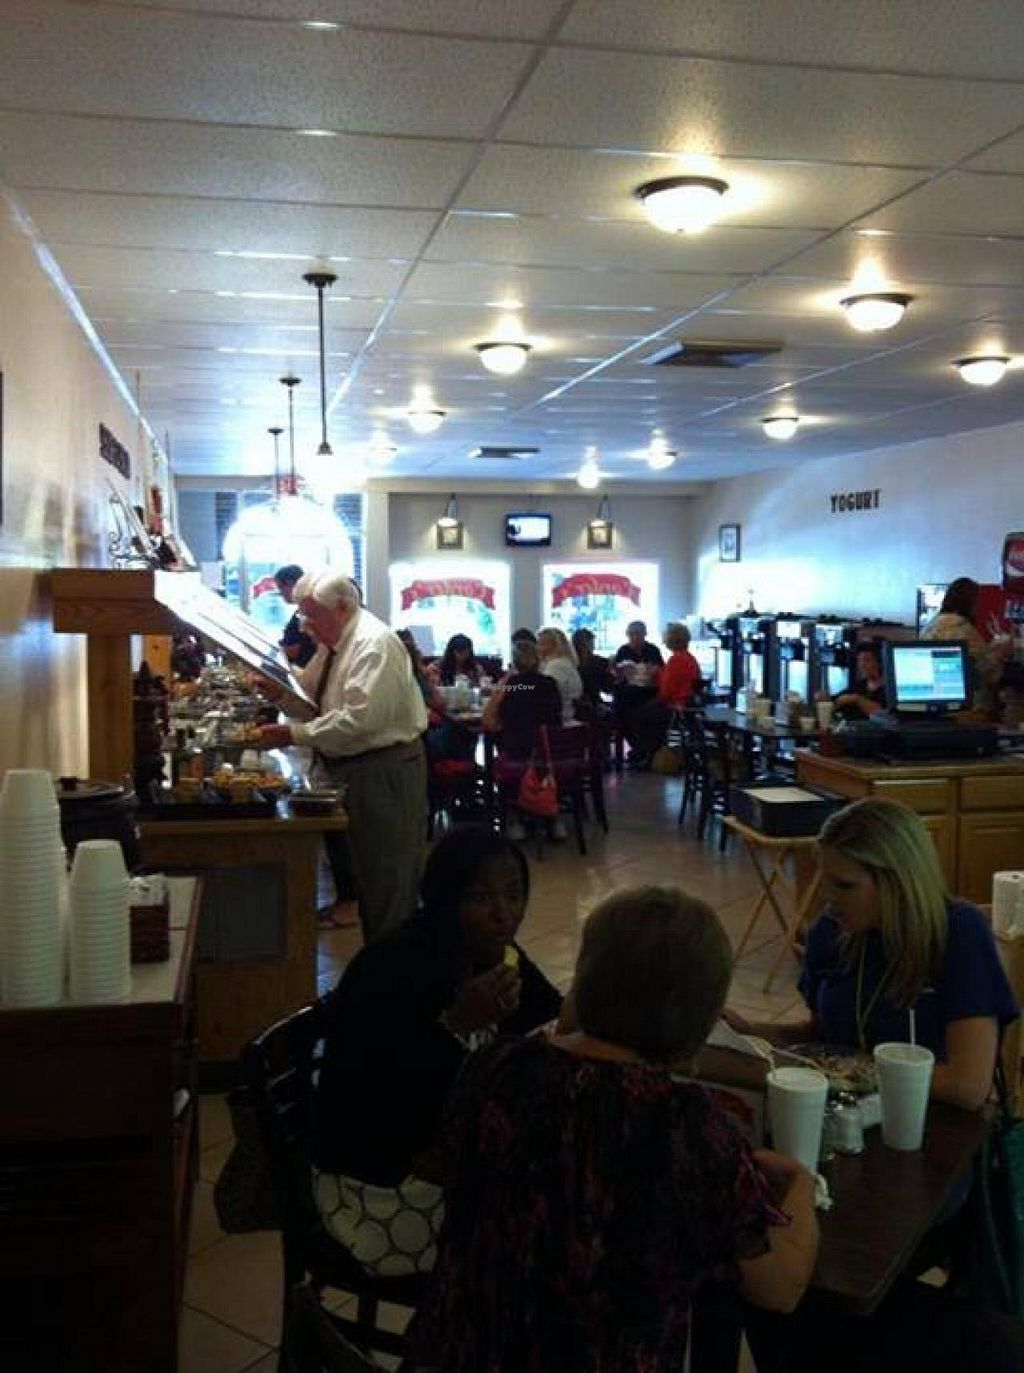 """Photo of Corder's Creamery and Garden Bar  by <a href=""""/members/profile/community"""">community</a> <br/>Corder's Creamery and Garden Bar <br/> May 30, 2014  - <a href='/contact/abuse/image/47742/71068'>Report</a>"""